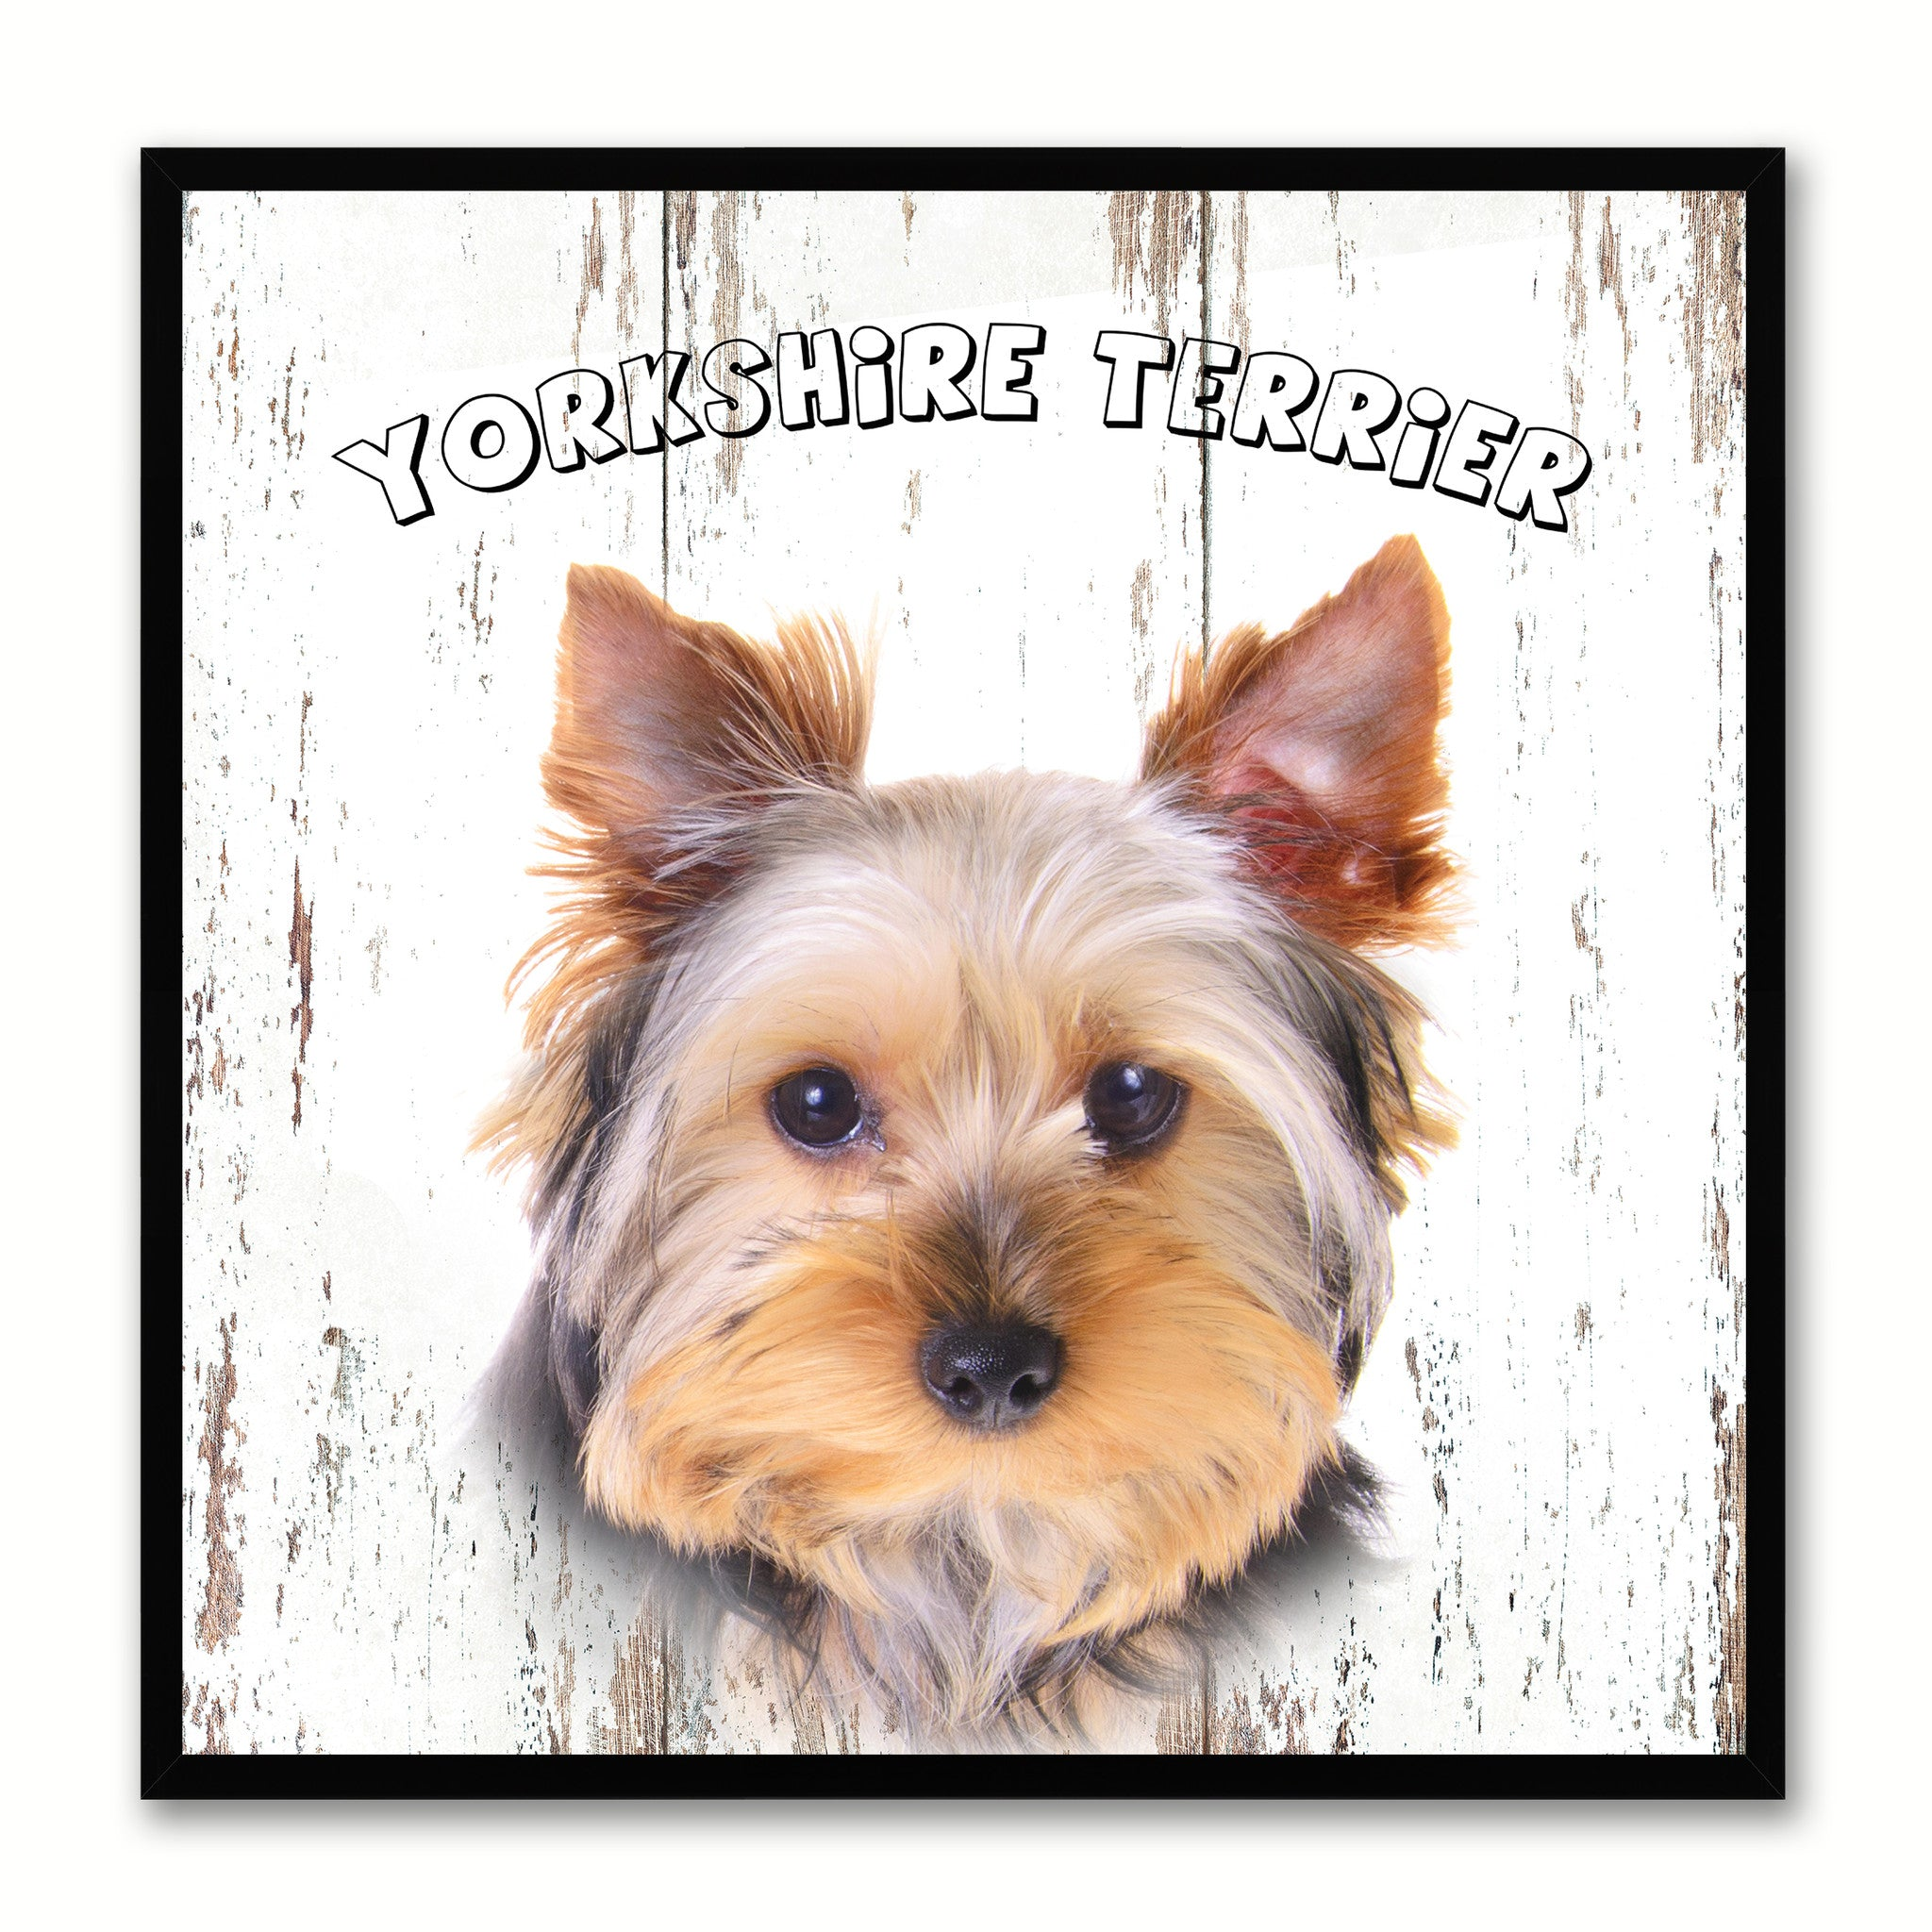 Yorkshire Terrier Dog Canvas Print Picture Frame Gift Home Decor Wall Art Decoration